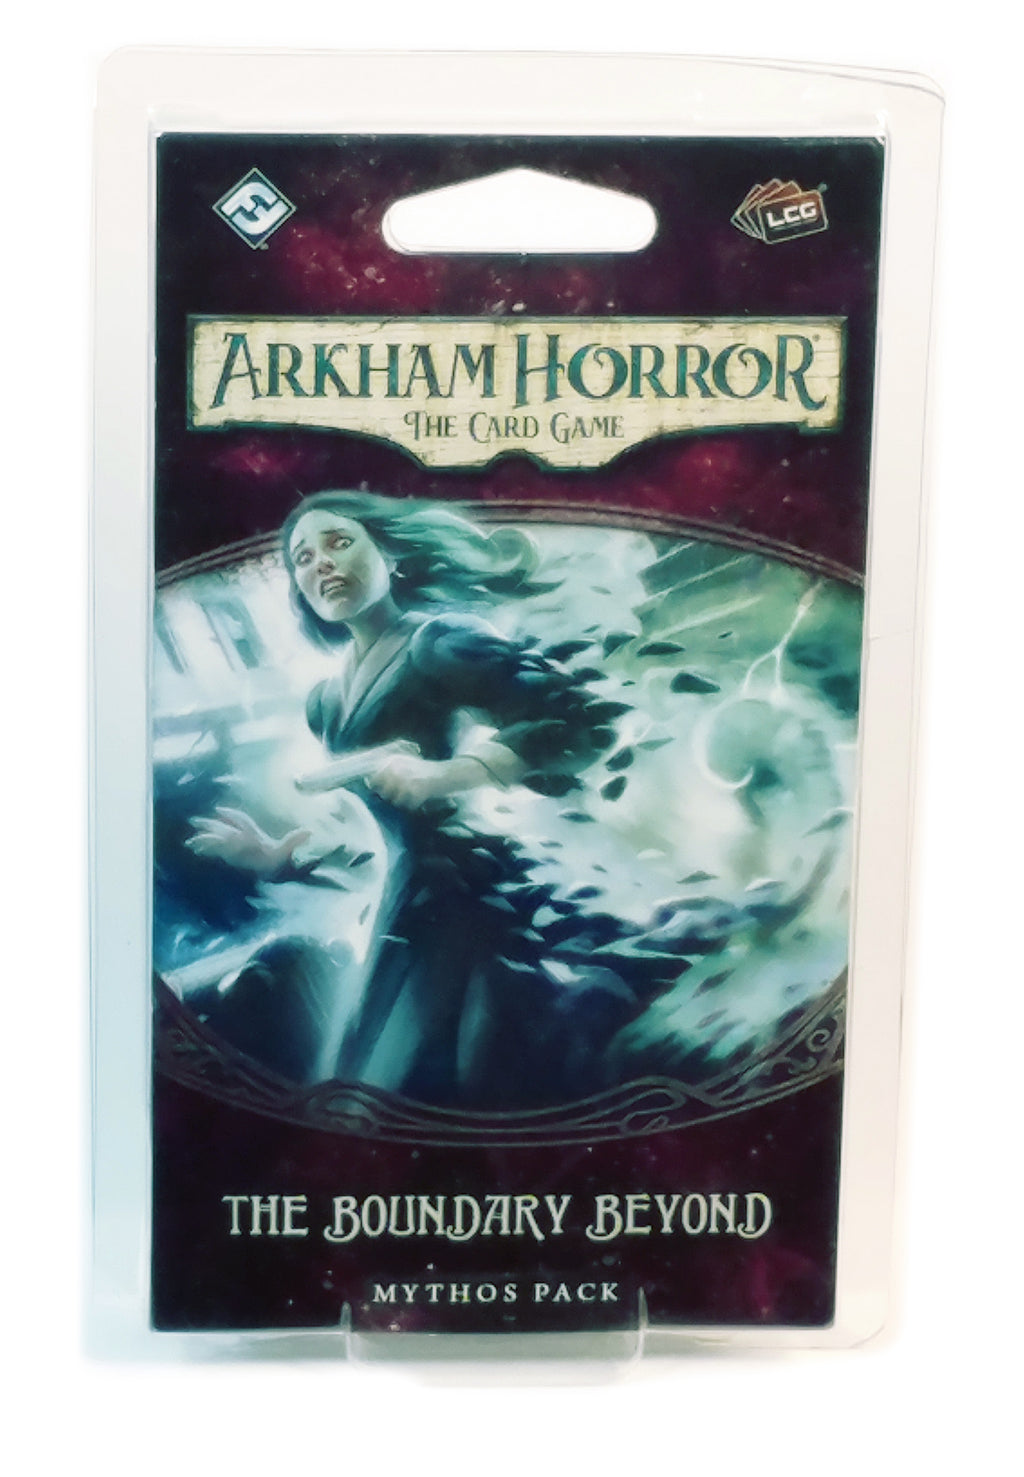 Arkham Horror LCG The boundary Beyond Mythos Pack Expansion